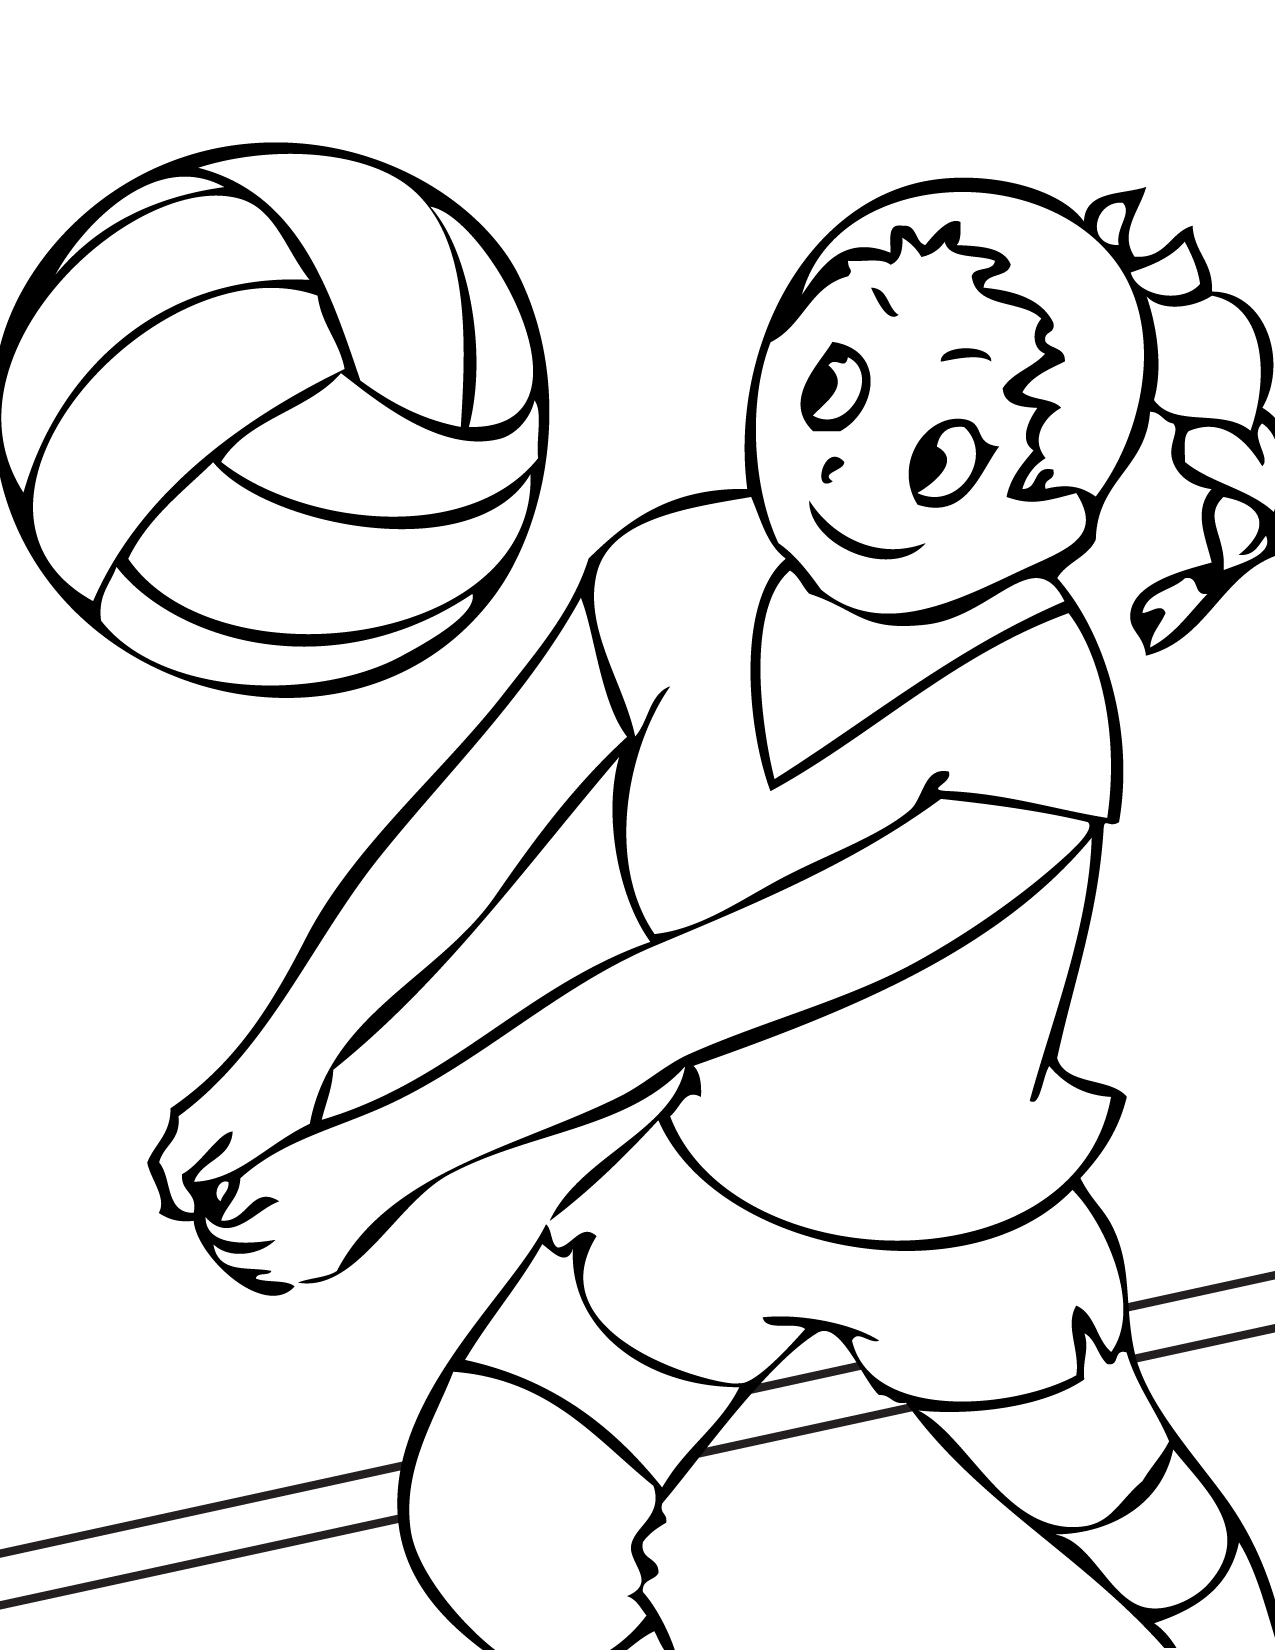 Trend sports clipart #7